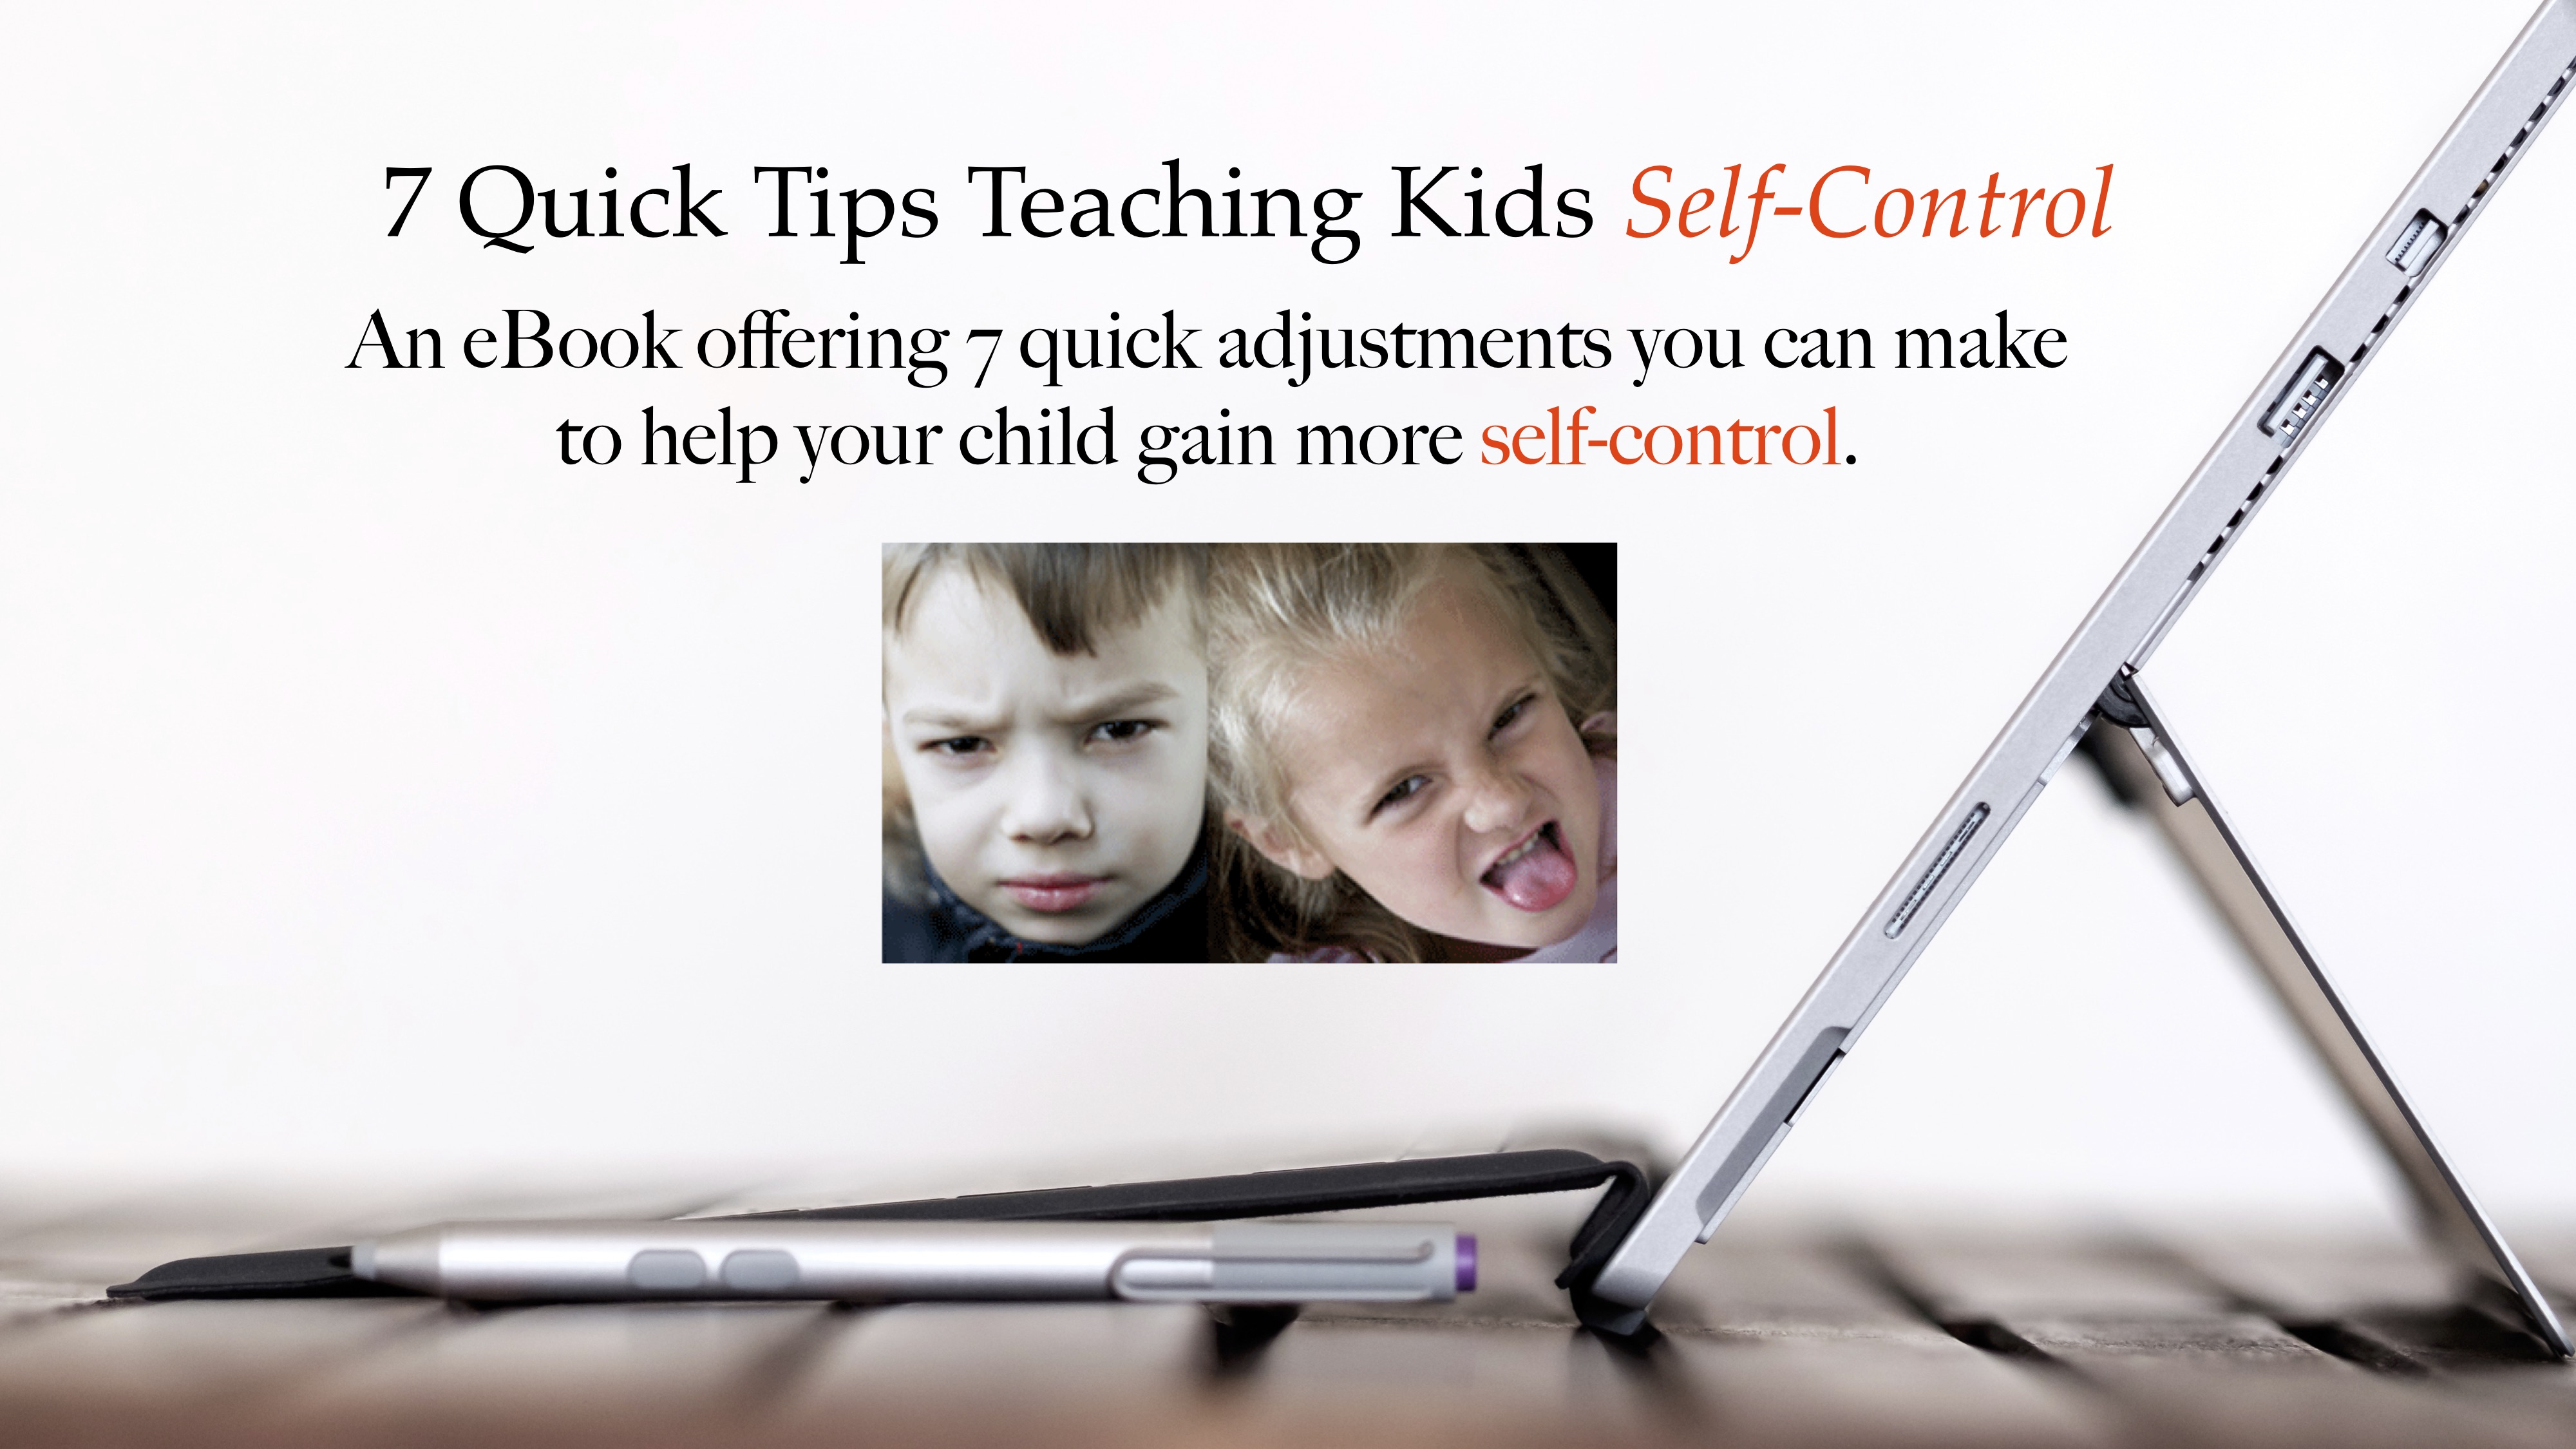 7 Ways to Help Kids Control Themselves An eBook with 7 Quick adjustments you can make to help your child gain more self-control.